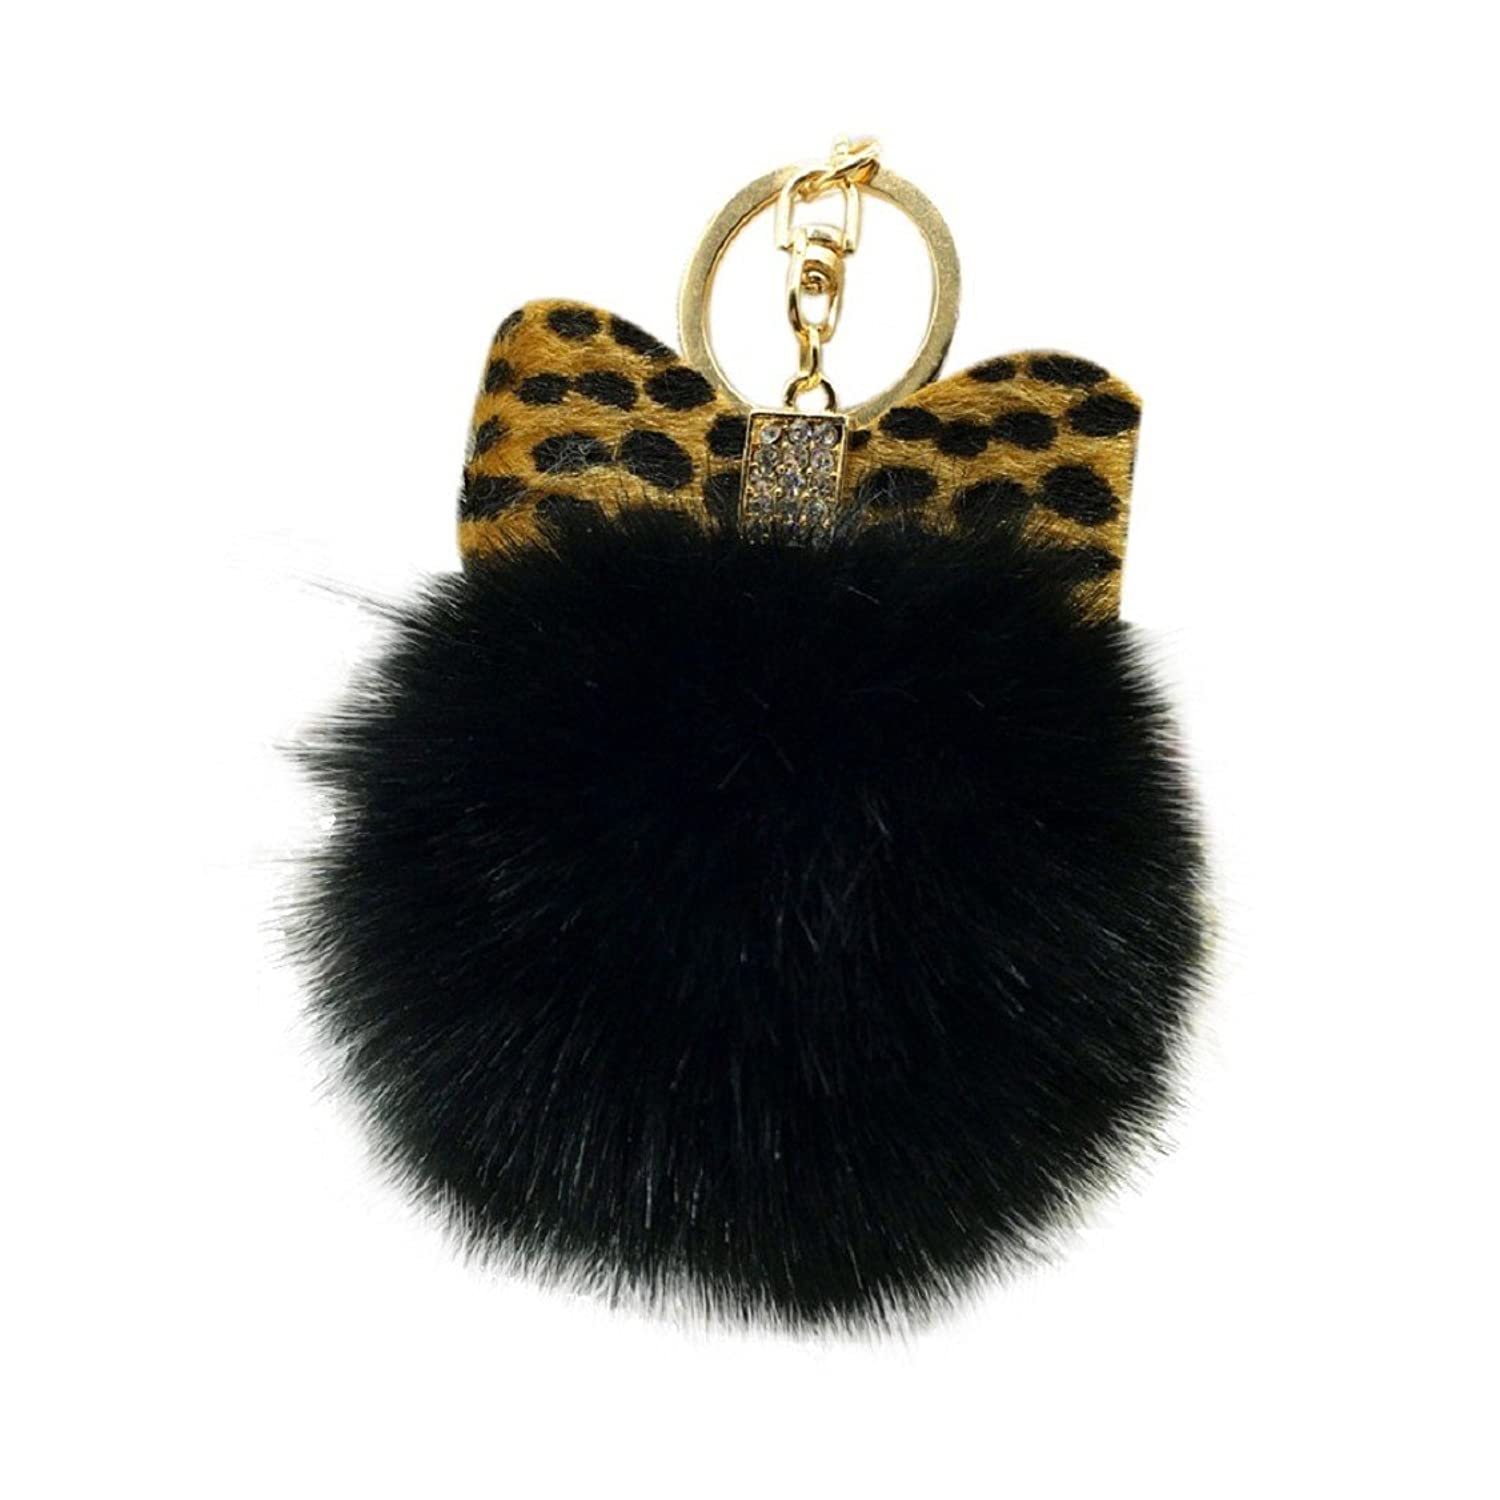 Egmy Leopard Bow Fluffy Faux Rabbit Fur Ball Bowknot Charm Car Keychain Handbag Key Ring (Black)